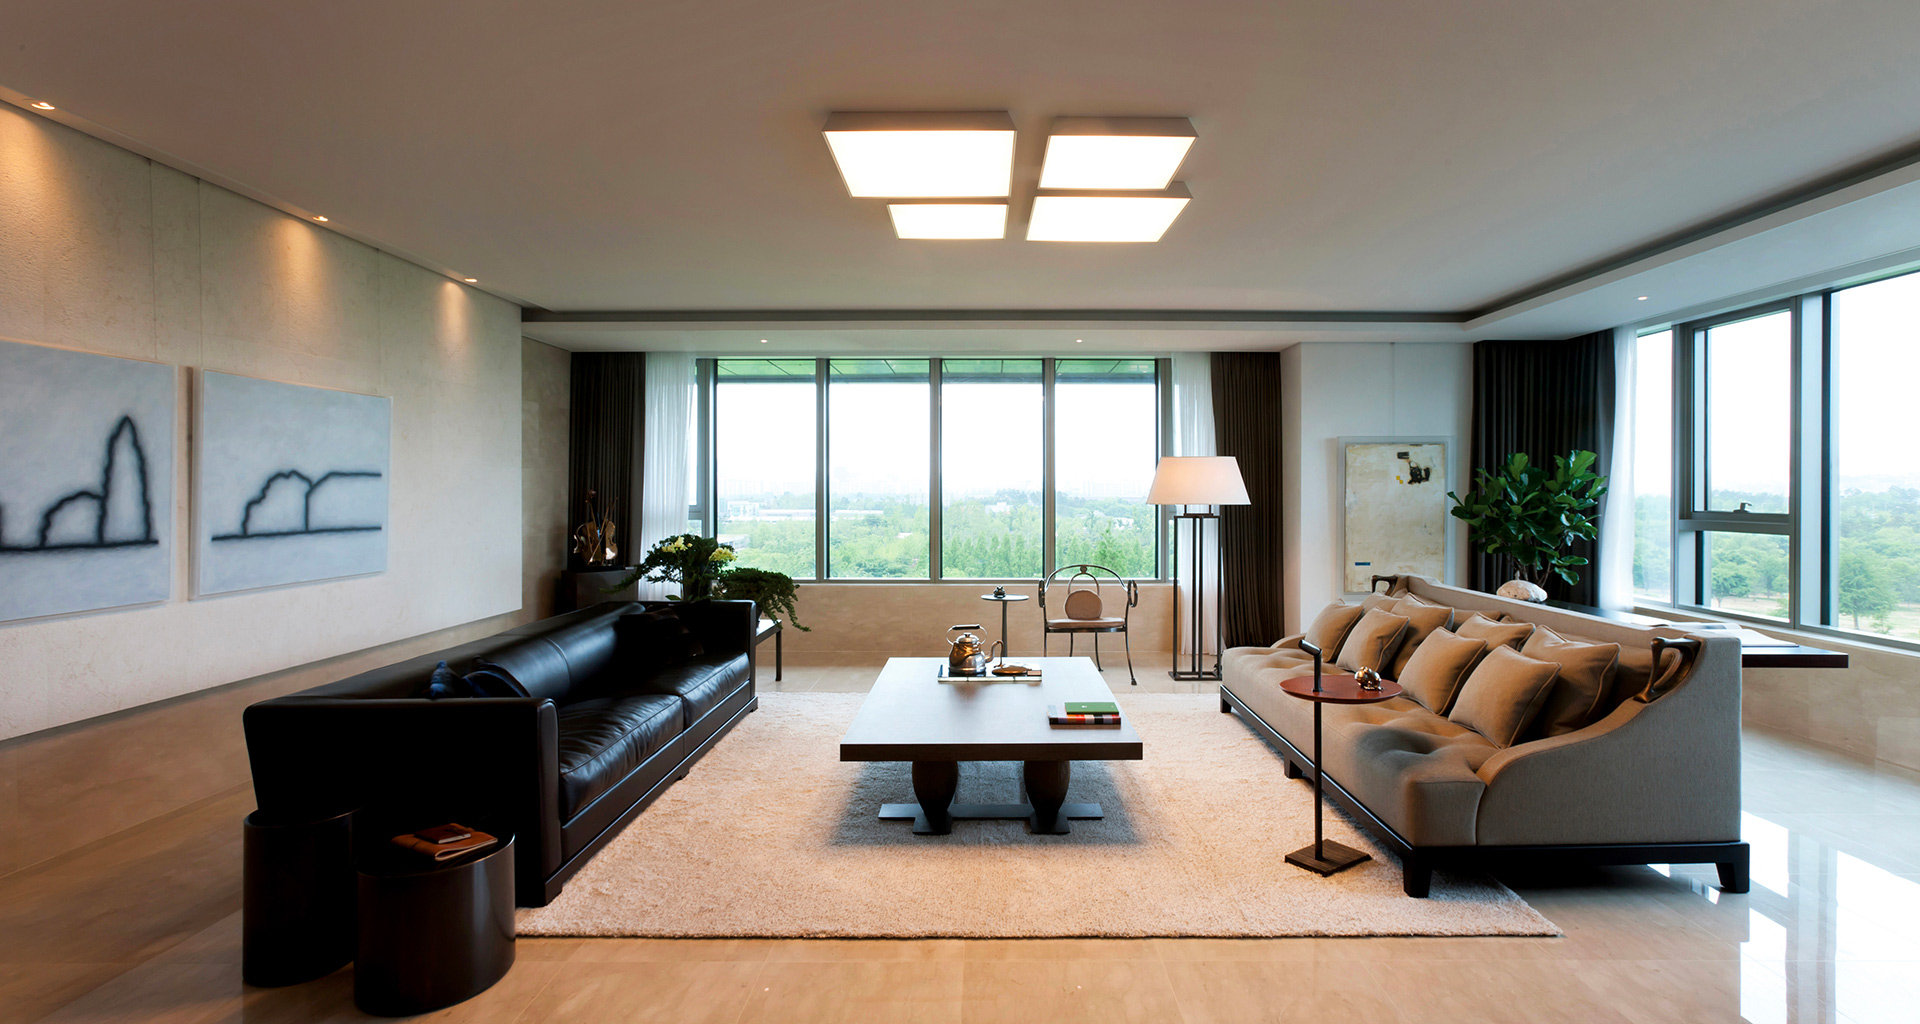 Living room of a private residence in Korea furnished with Promemoria | Promemoria